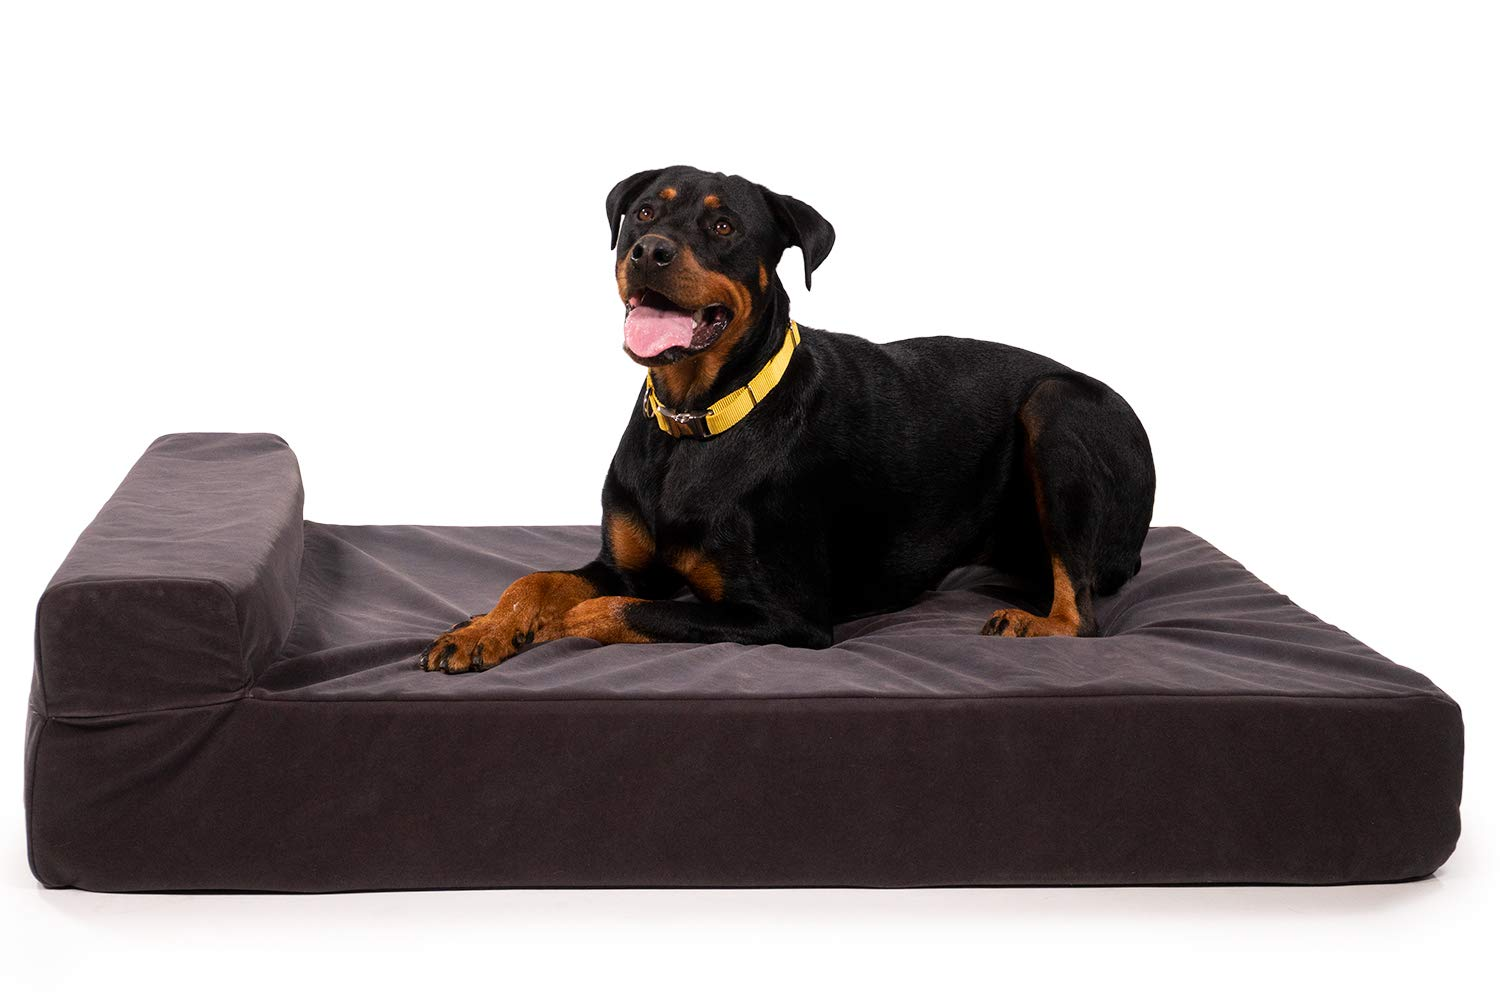 """K9 Ballistics Giant 7"""" Bolster Orthopedic Dog Beds, USA Made CertiPUR-US Foam, Double Cover, Rip-Stop Waterproof Liner Included, XL, XXL, X-Large, Giant"""